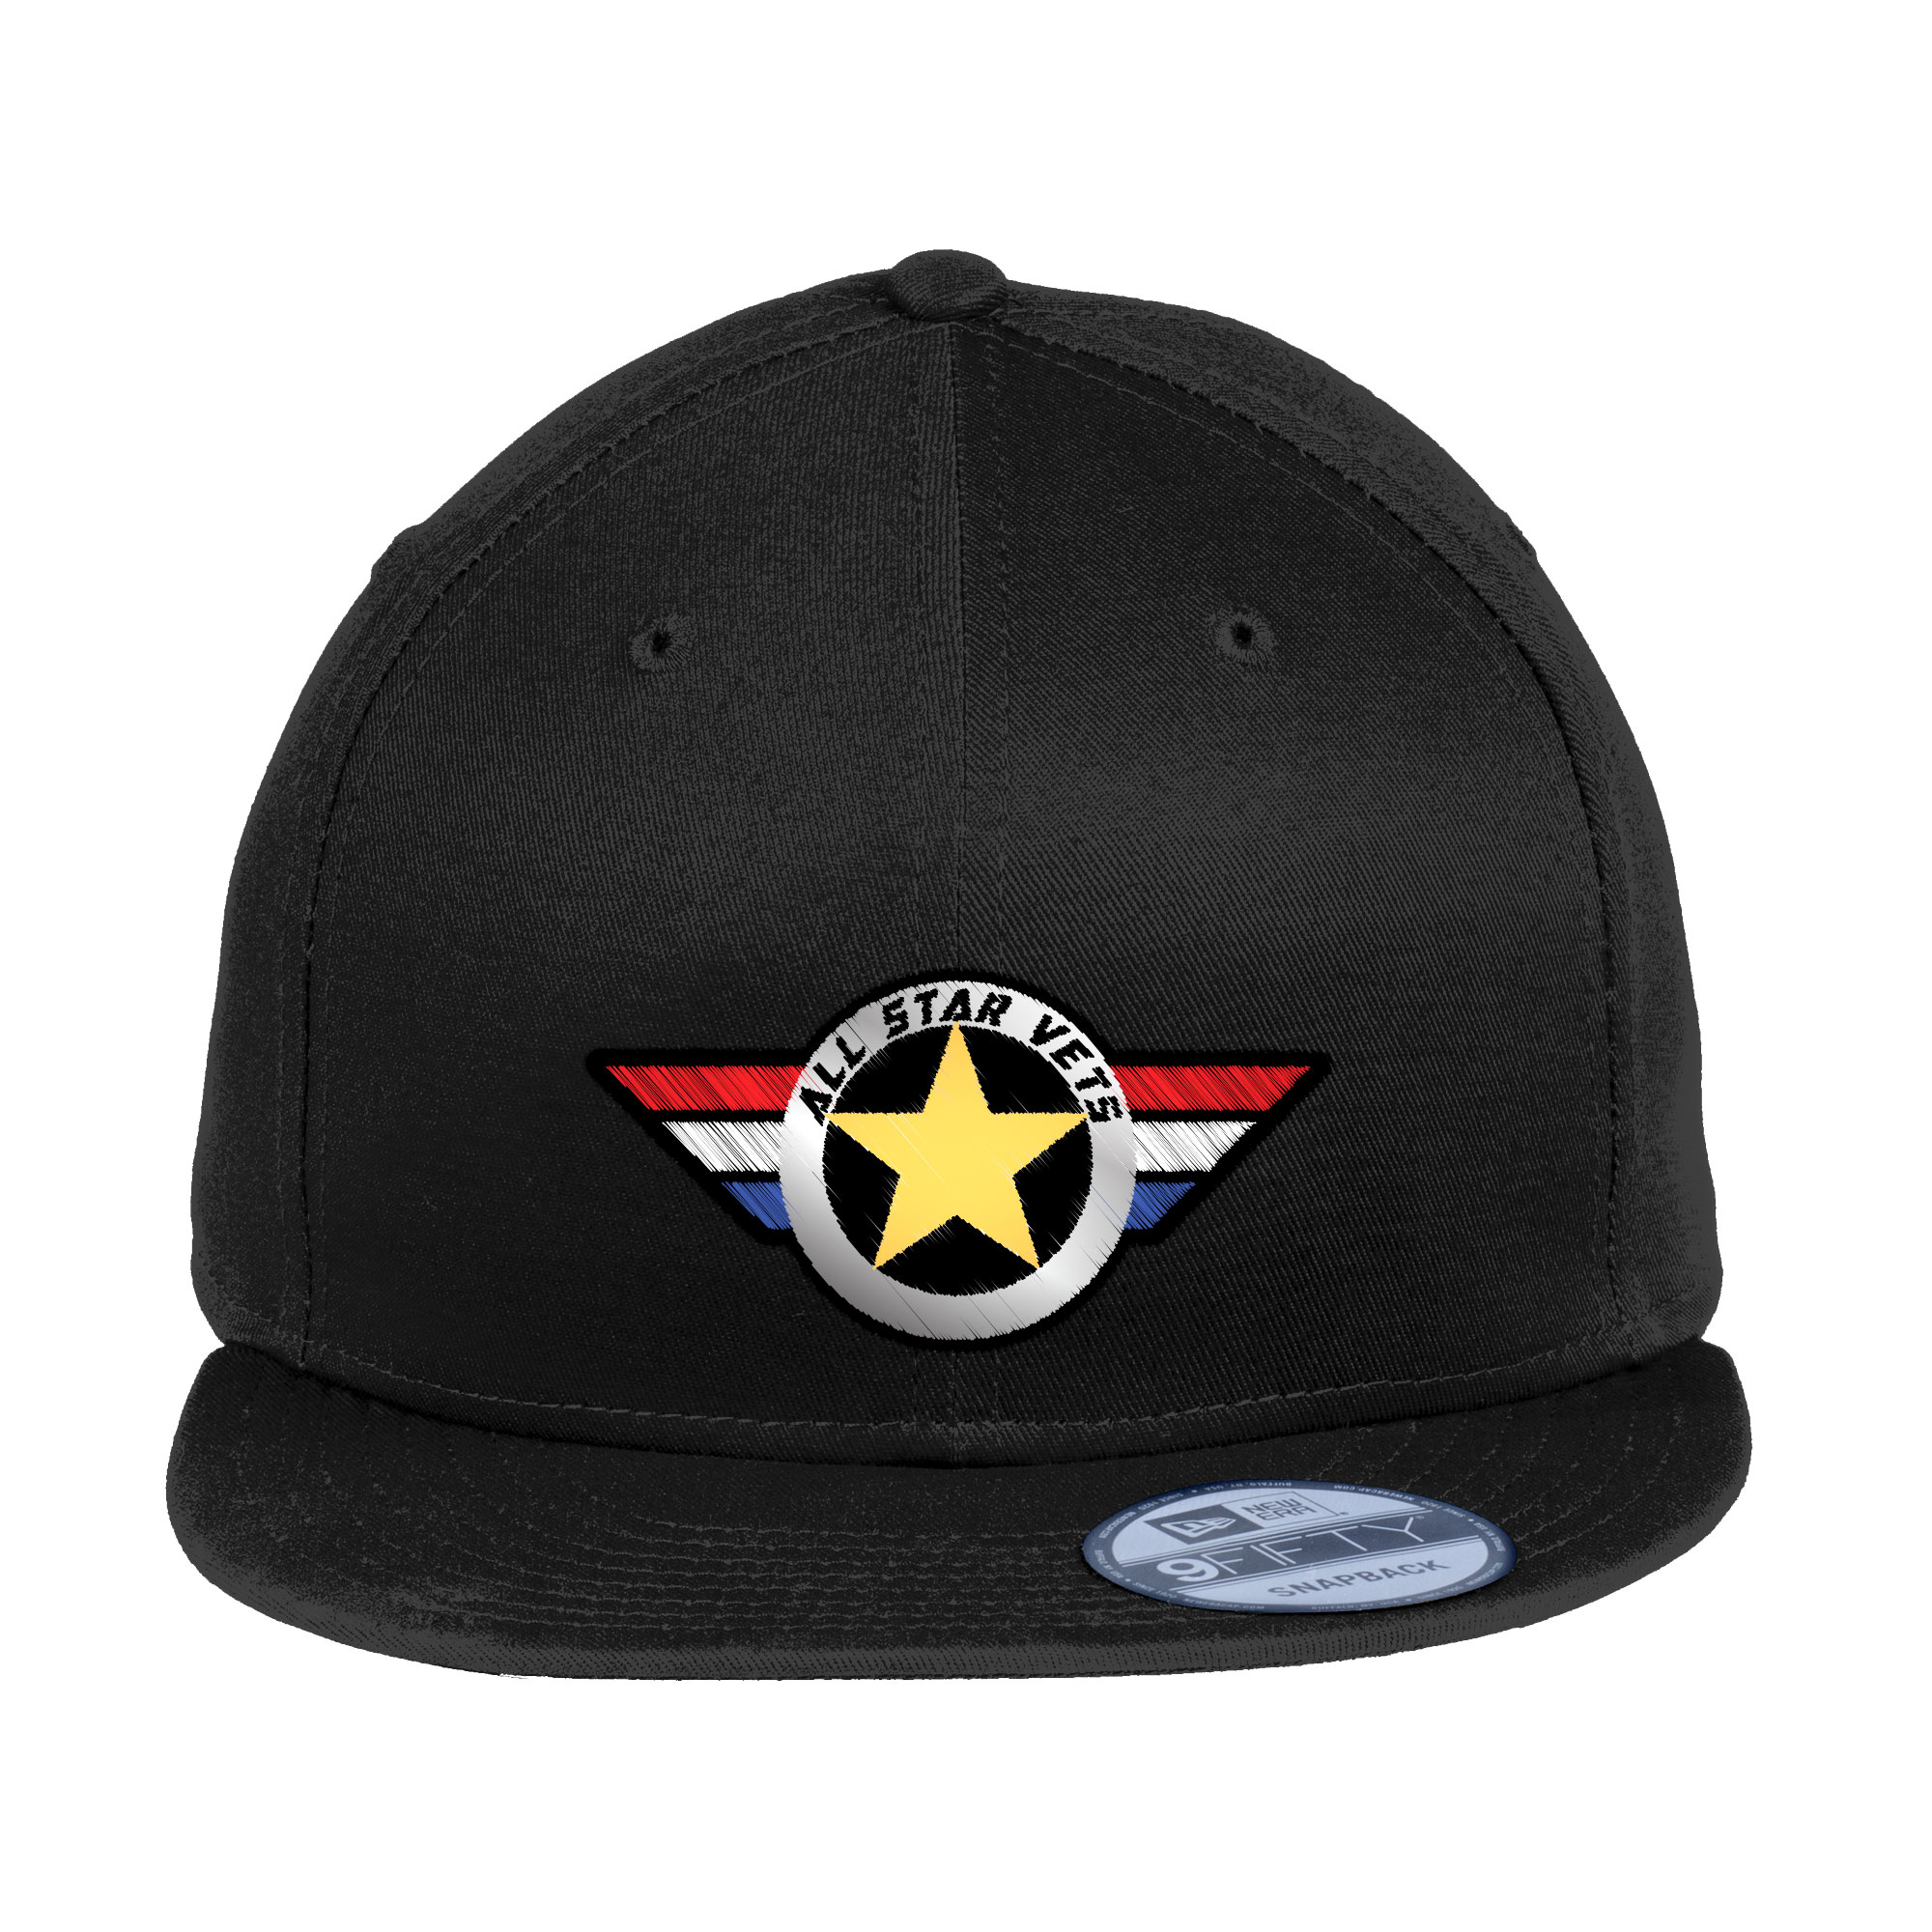 New Era® - Flat Bill Snapback Cap - All Star Vets 6384be63170e